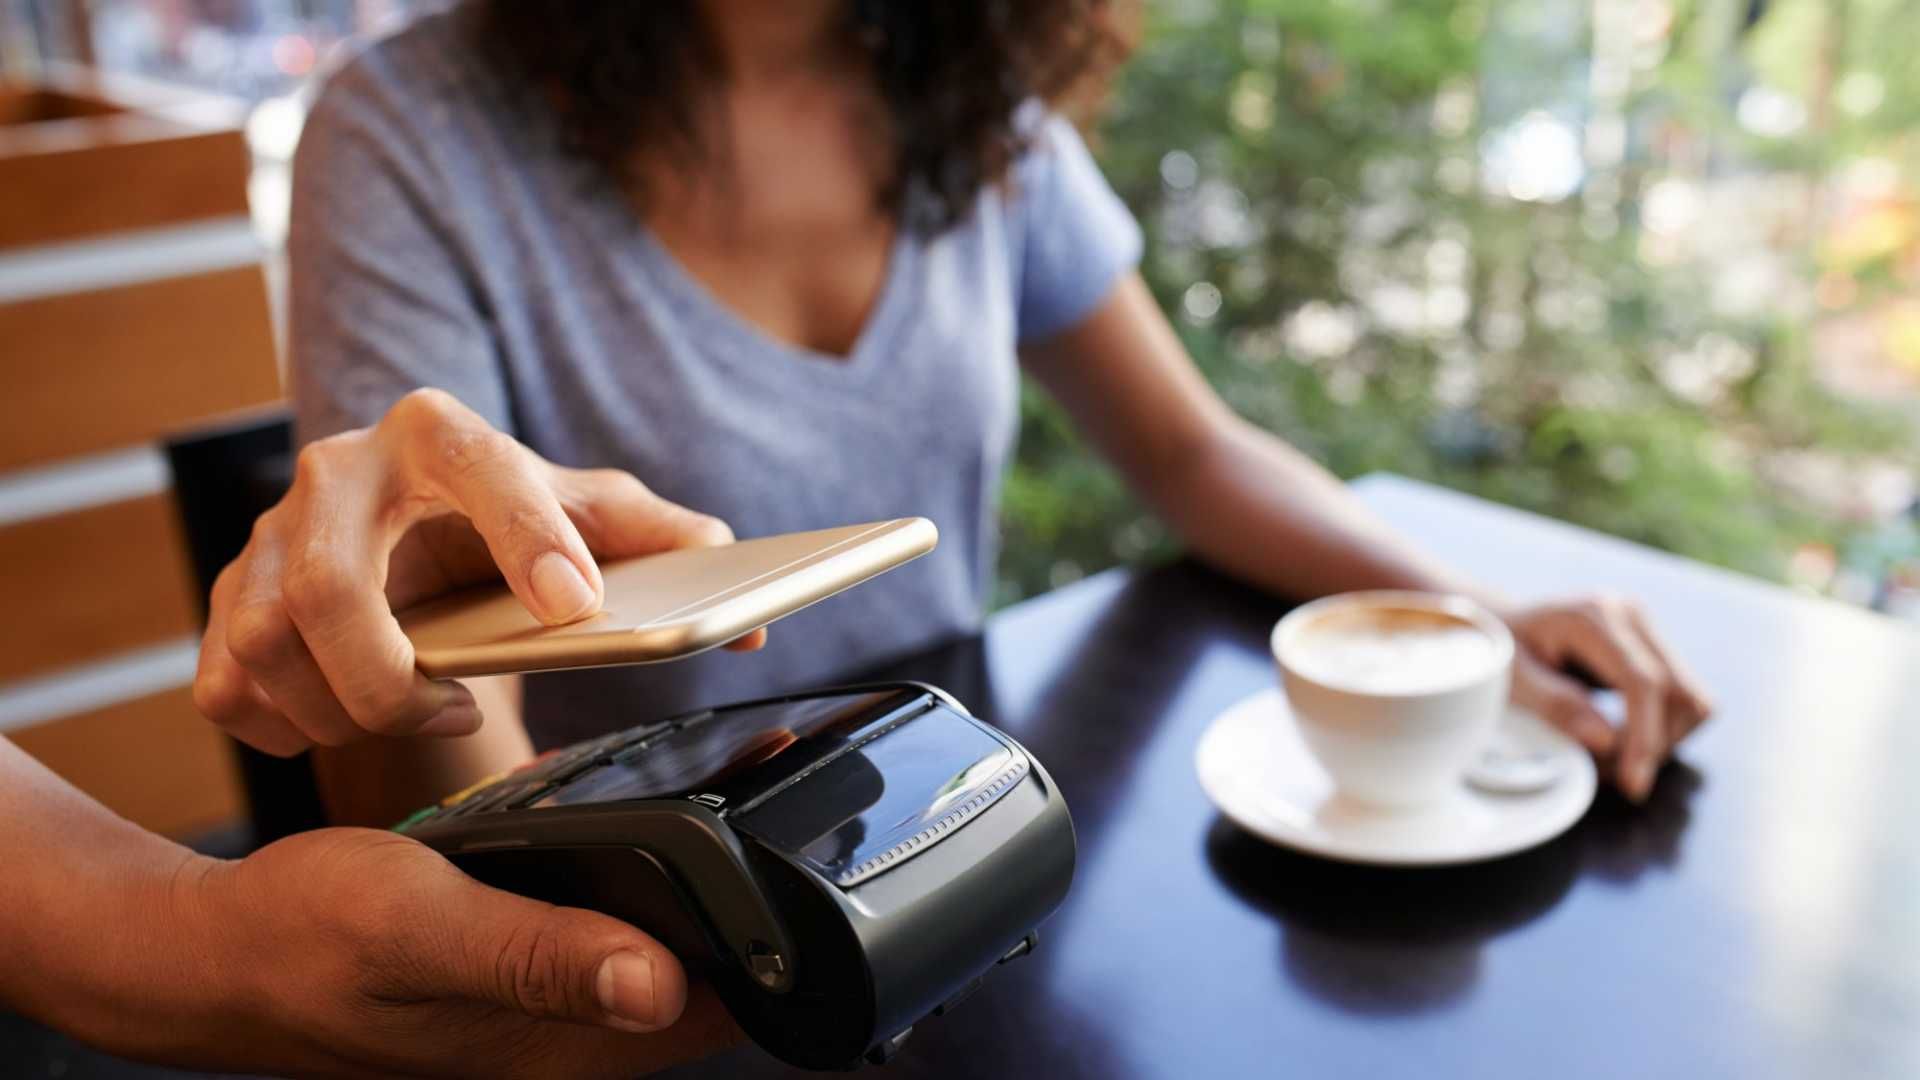 Marketing to Mobile Devices: Simple, Affordable Strategies for SMBs